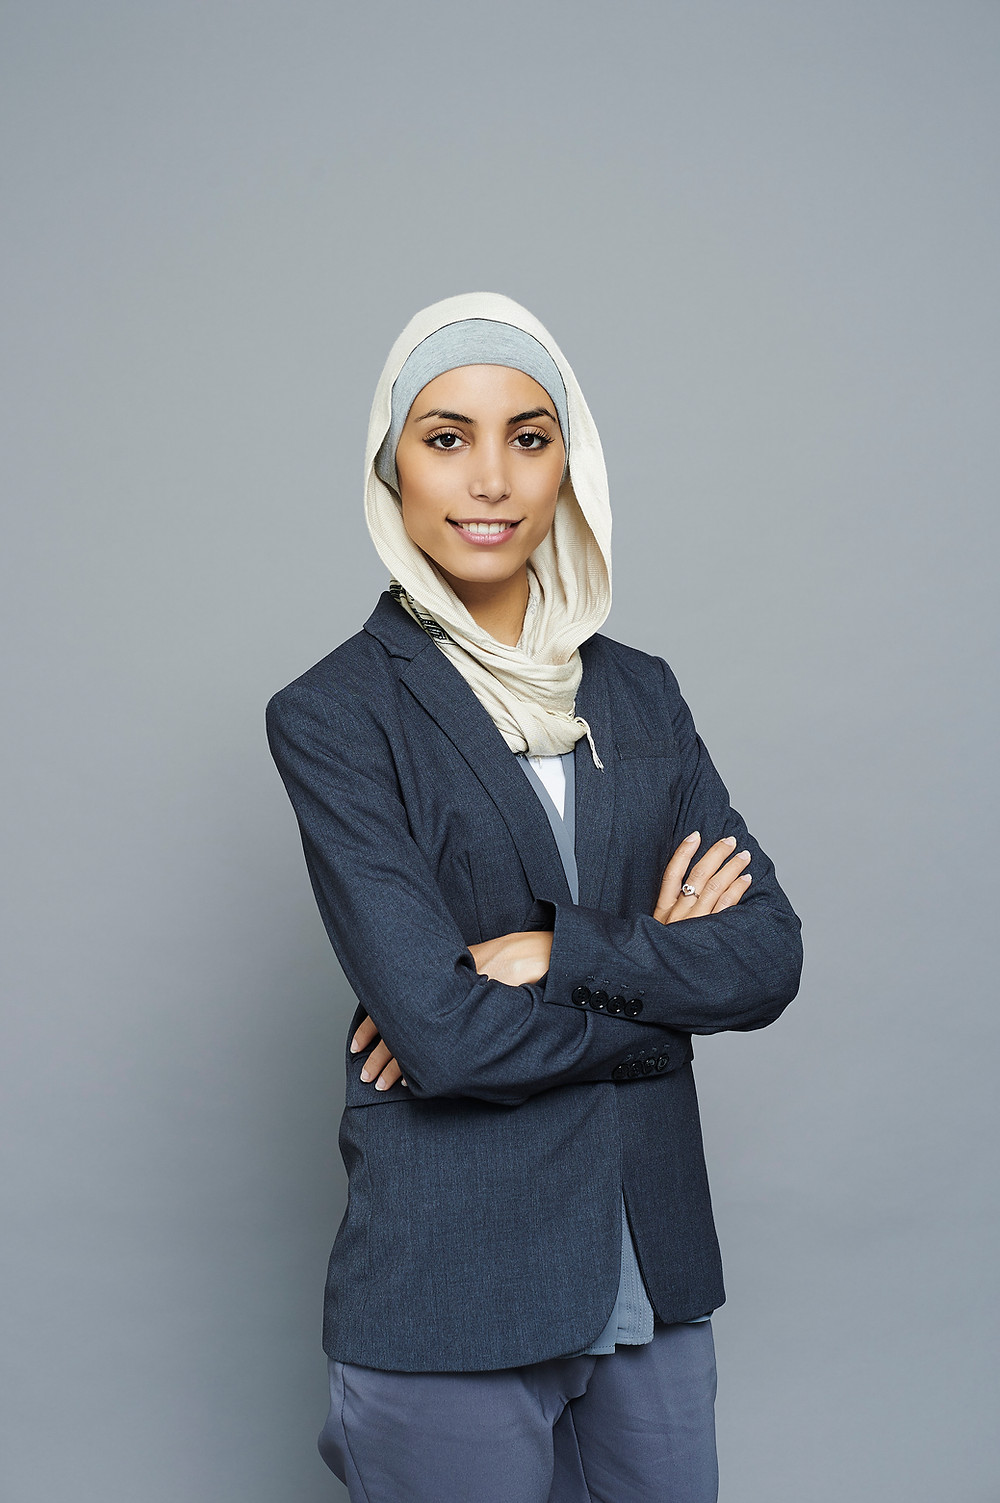 Woman in a white hijab and casual suit in front of a gray wall.